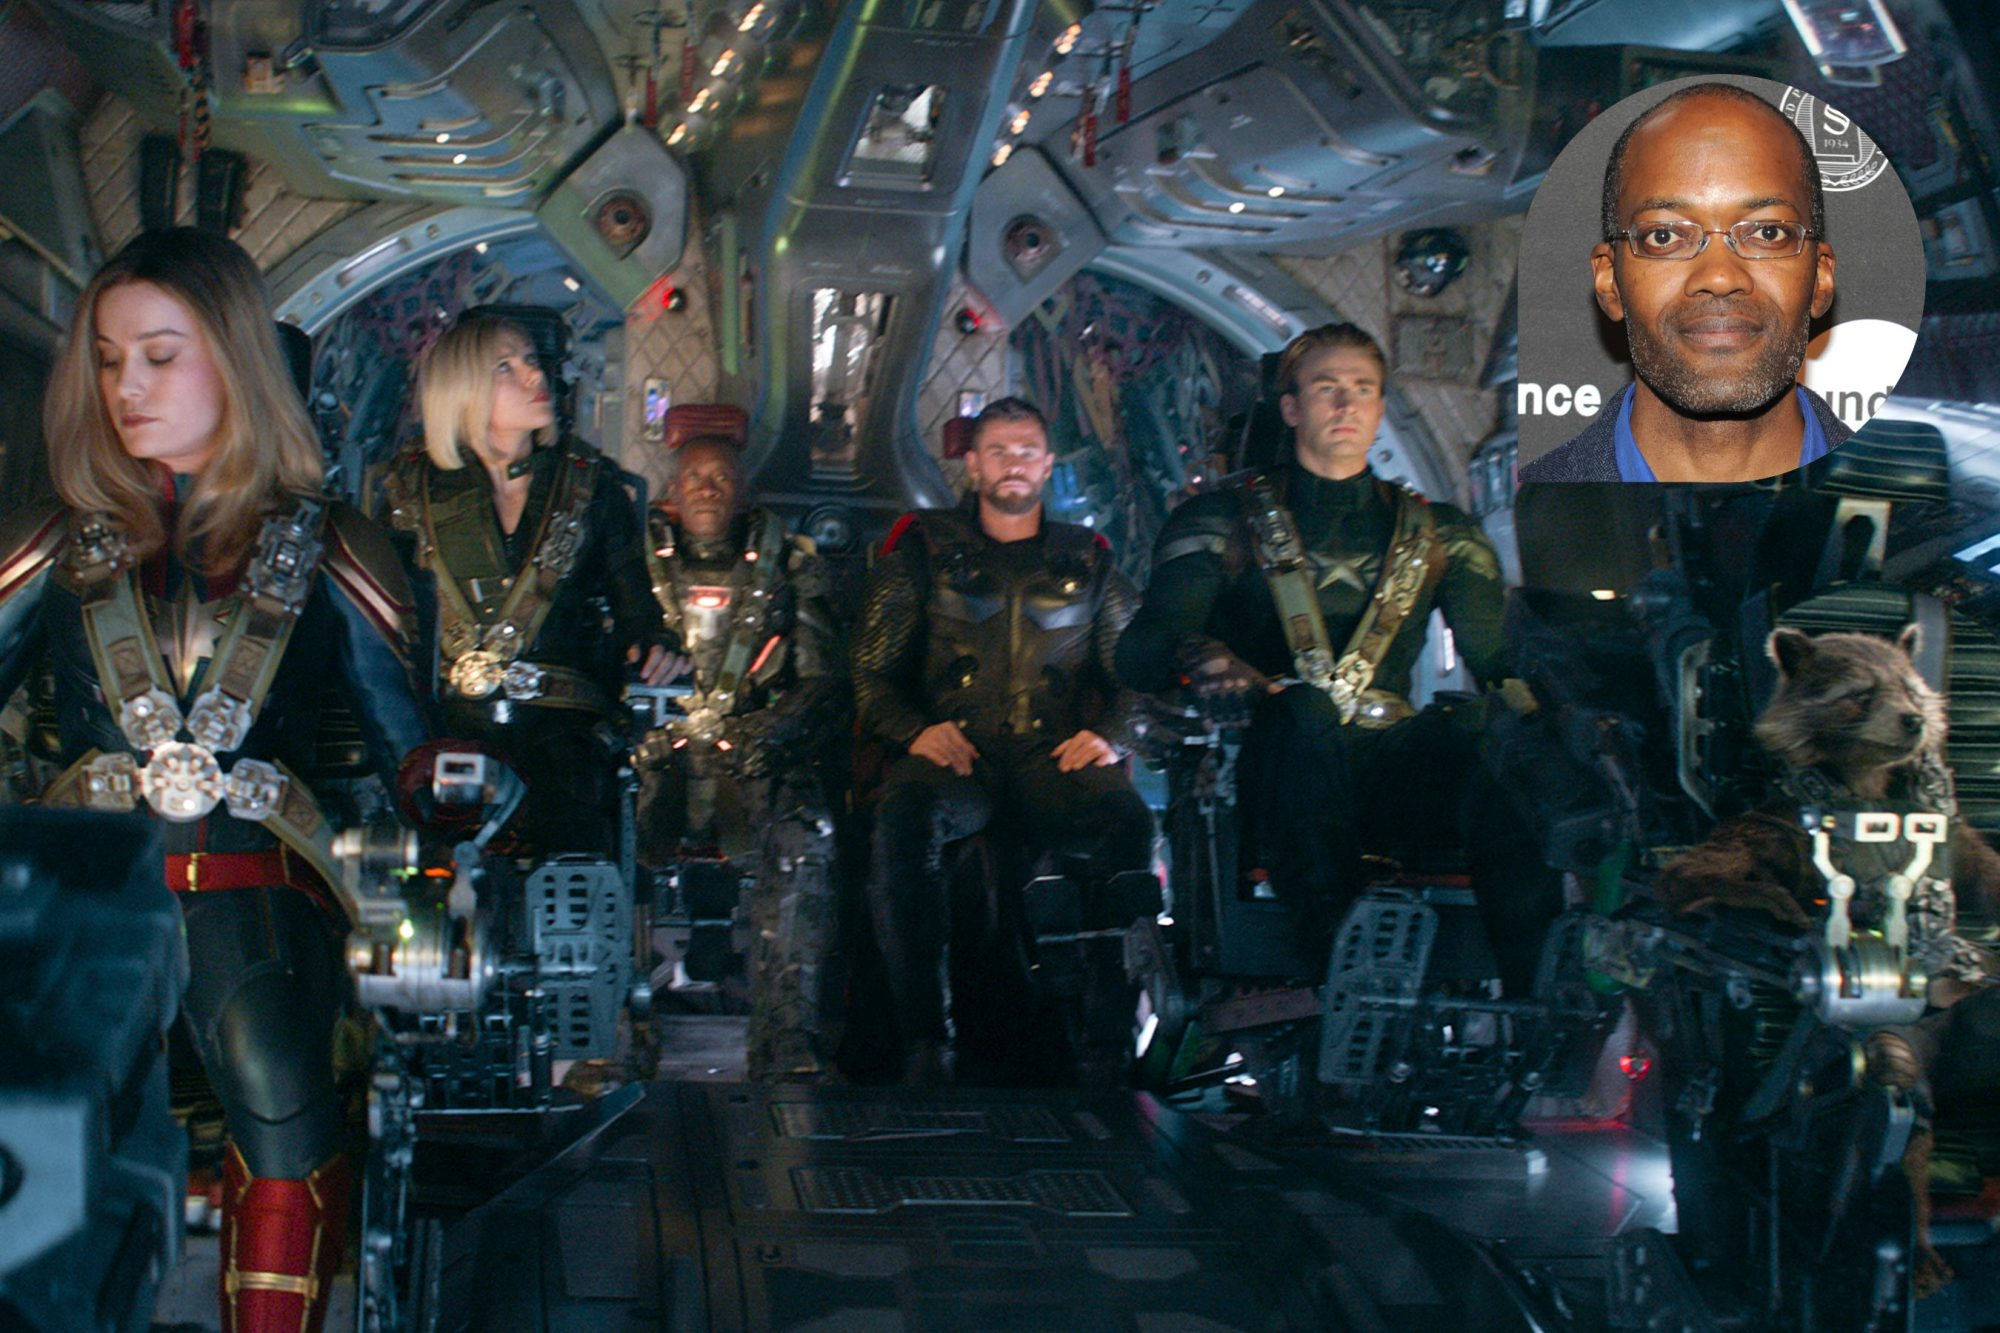 Marvel Studios' AVENGERS: ENDGAME..L to R: Captain Marvel/Carol Danvers (Brie Larson), Black Widow/Natasha Romanoff (Scarlett Johansson), War Machine/James Rhodey (Don Cheadle), Thor (Chris Hemsworth), Captain America/Steve Rogers (Chris Evans) and Rocket (voiced by Bradley Cooper)..Photo: Film Frame..©Marvel Studios 2019 PARK CITY, UT - JANUARY 26: Clifford Johnson attends the Alfred P. Sloan Foundation Reception and Prize Announcement during the 2016 Sundance Film Festival at High West Distillery on January 26, 2016 in Park City, Utah. (Photo by Sonia Recchia/Getty Images for Sundance Film Festival)